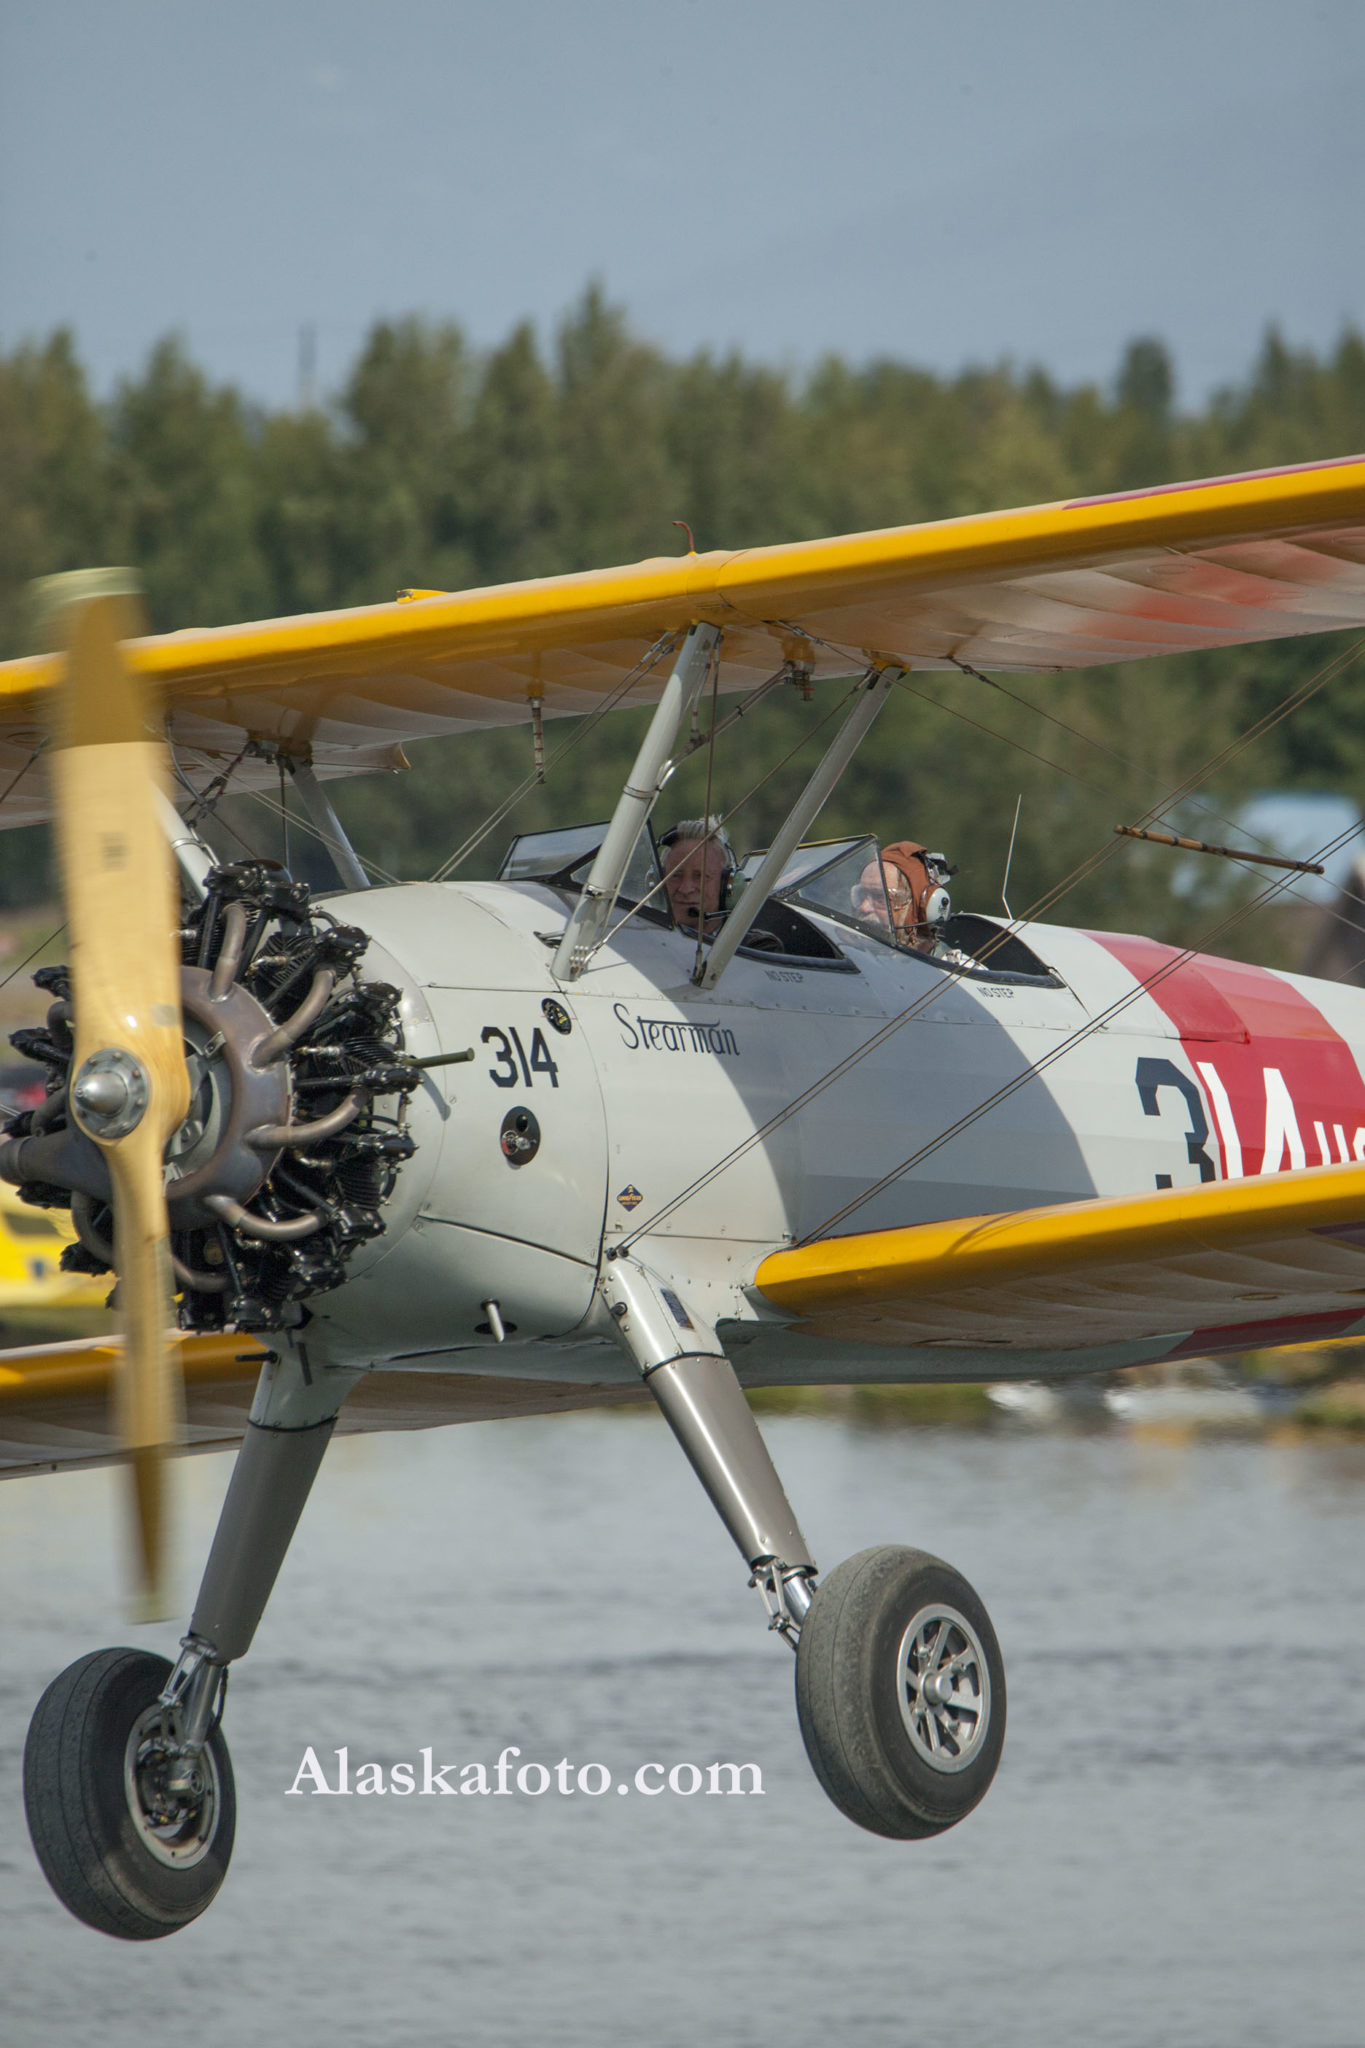 Alaska, aviation, biplane, Stearman, aviation photography